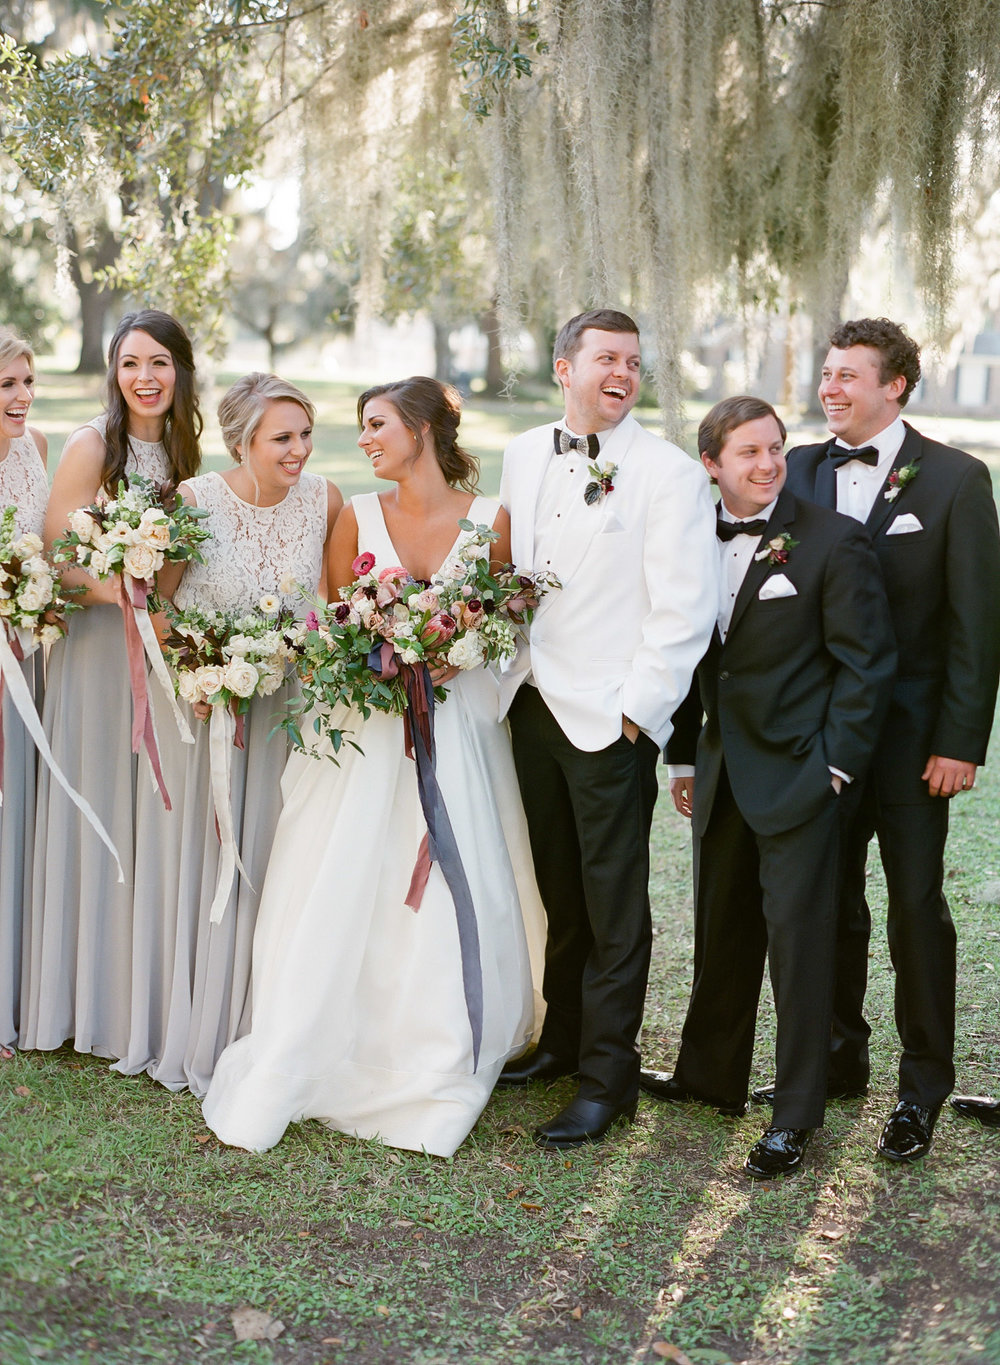 Charleston-Wedding-Photographer-57.jpg